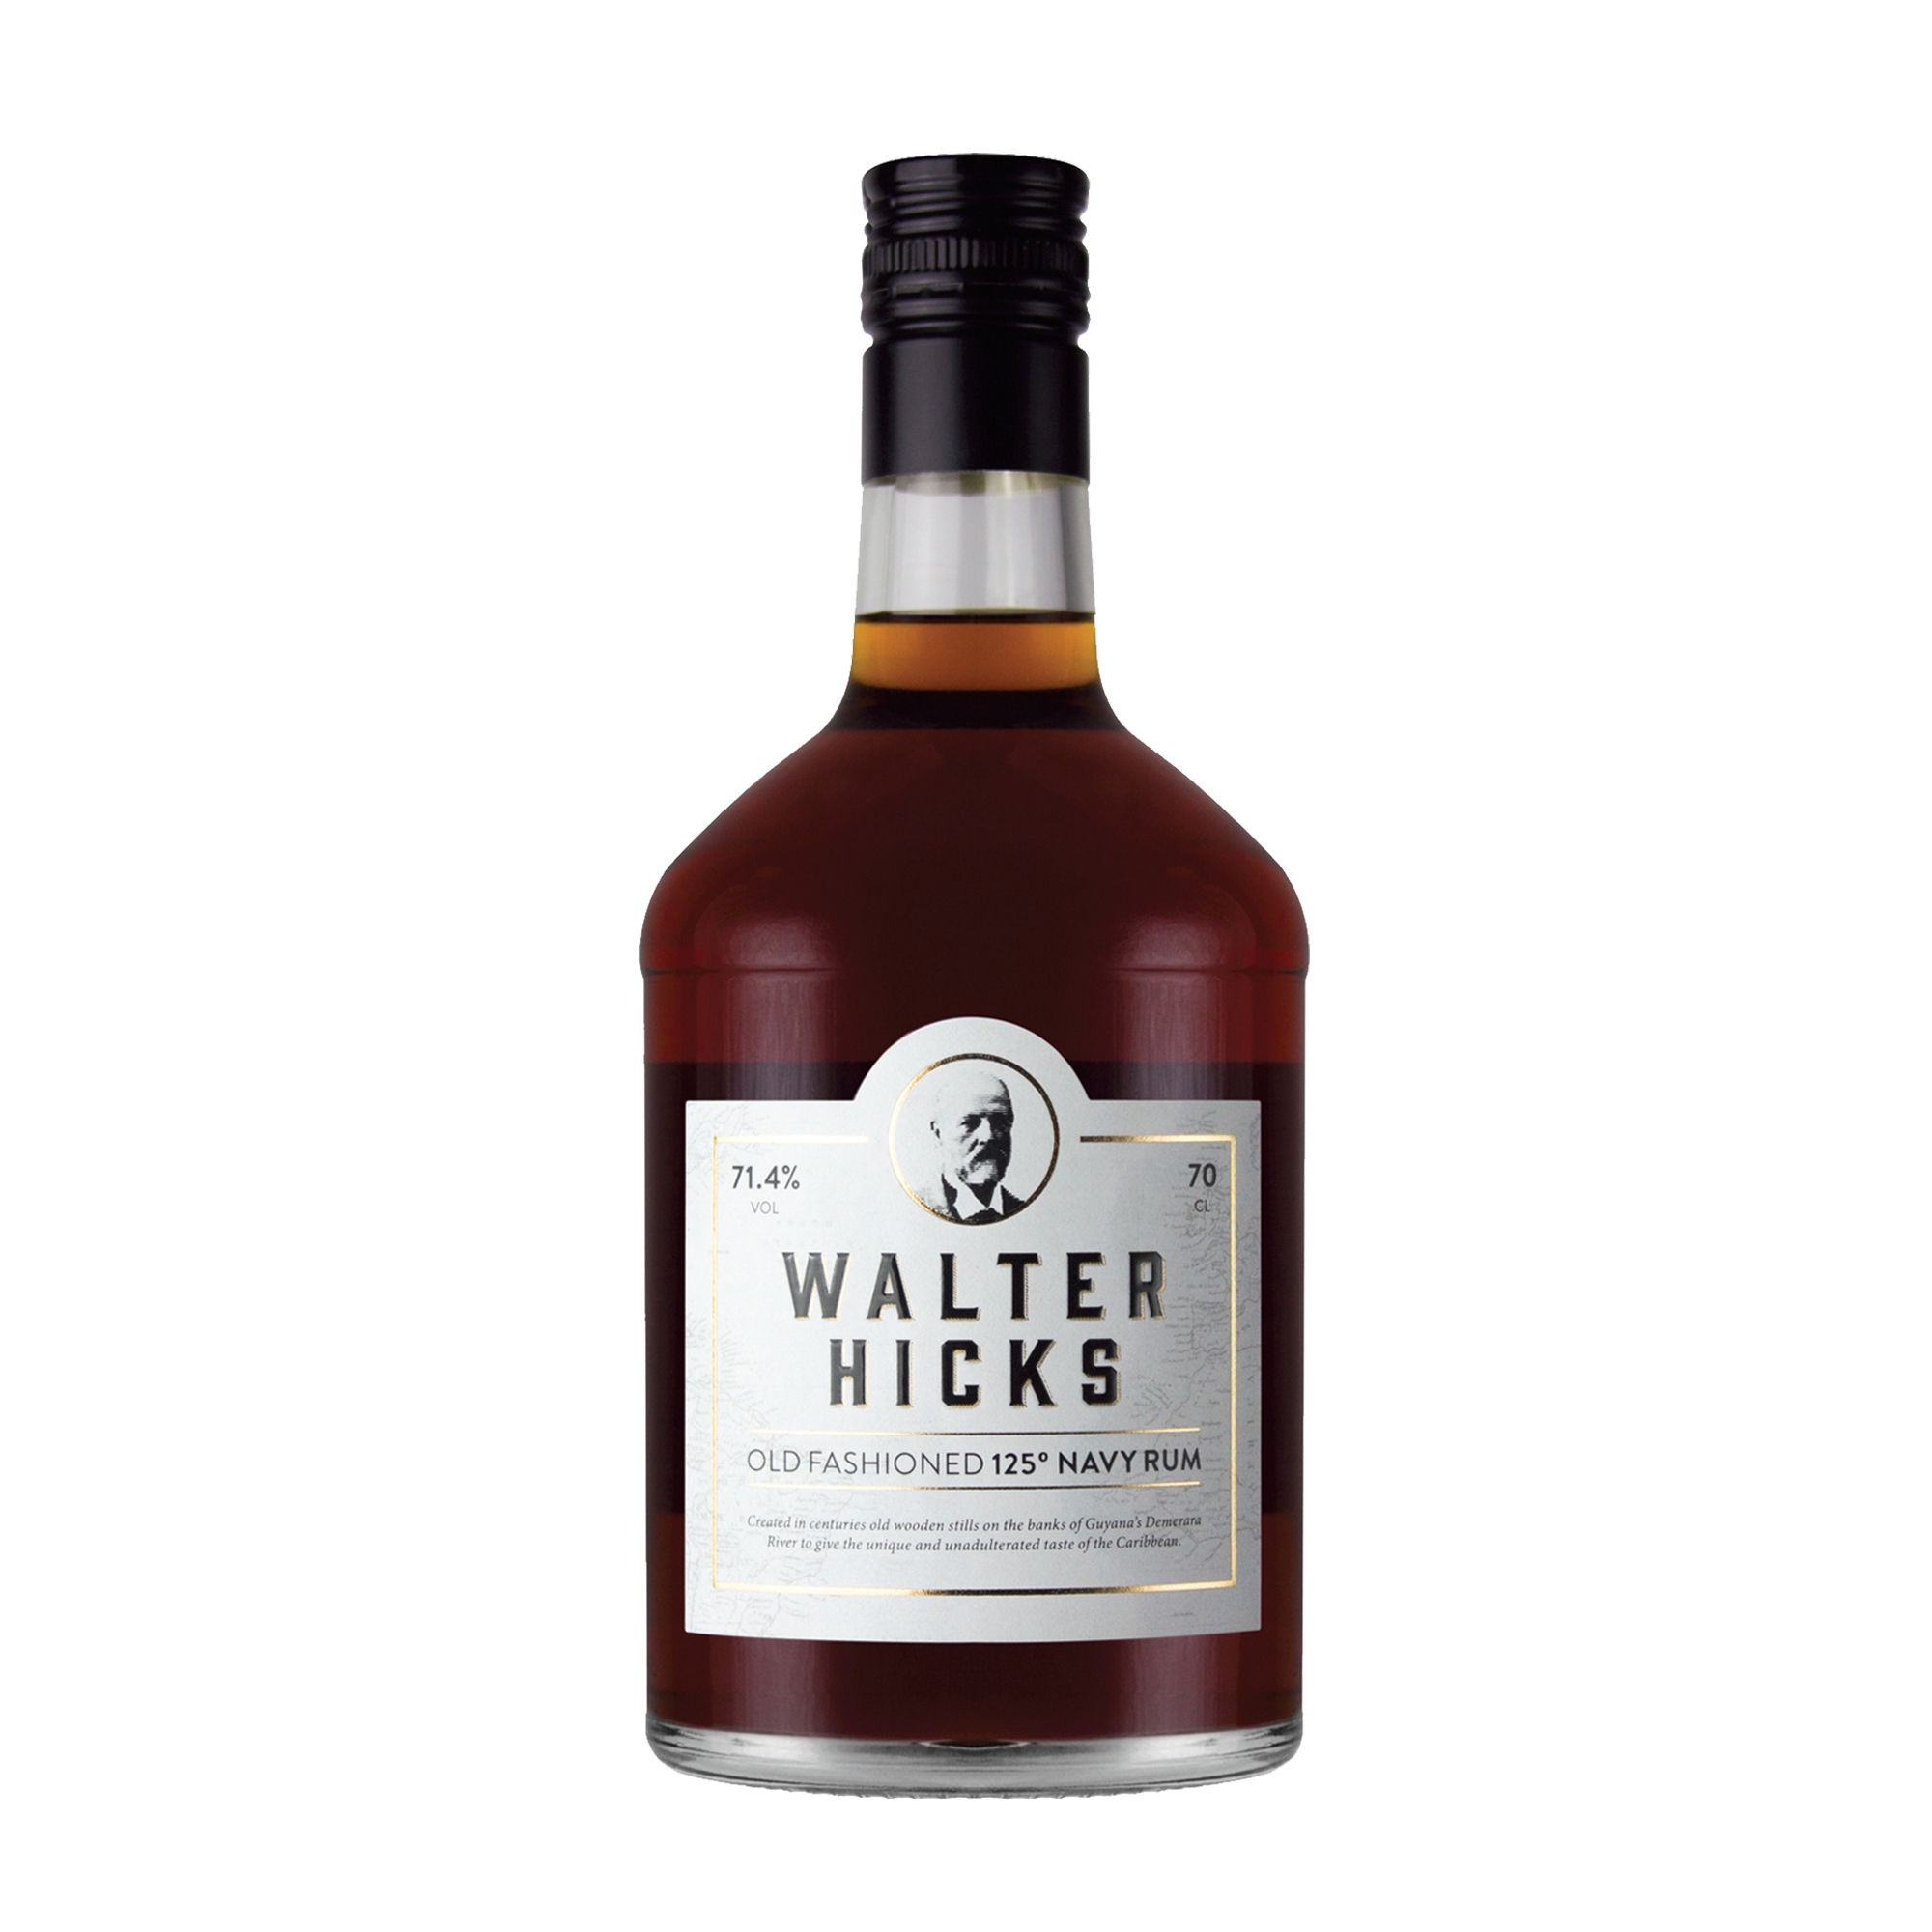 Walter Hicks Navy Rum